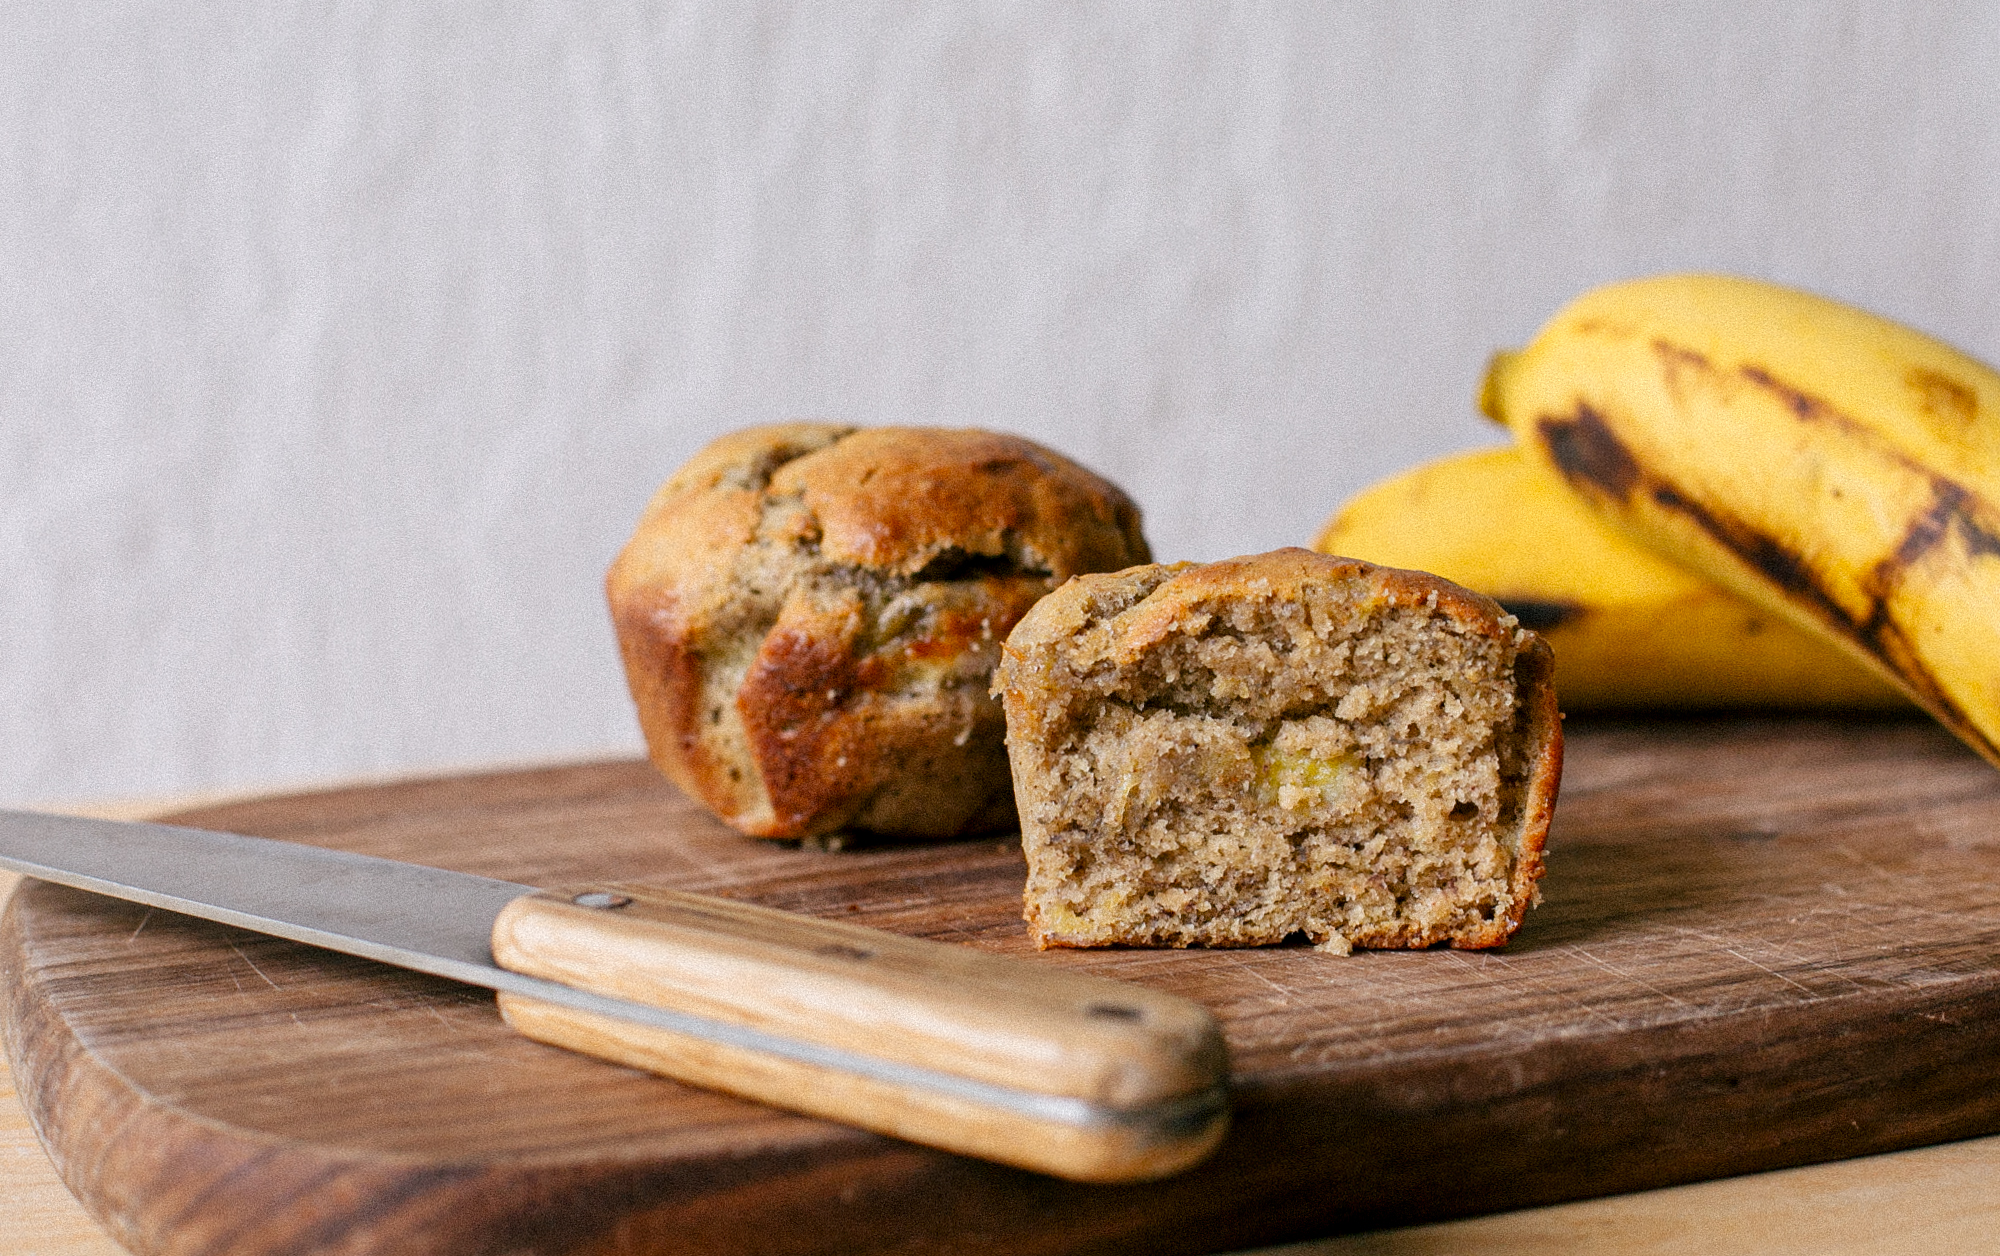 Gifts For Friends: Homemade Banana Muffin